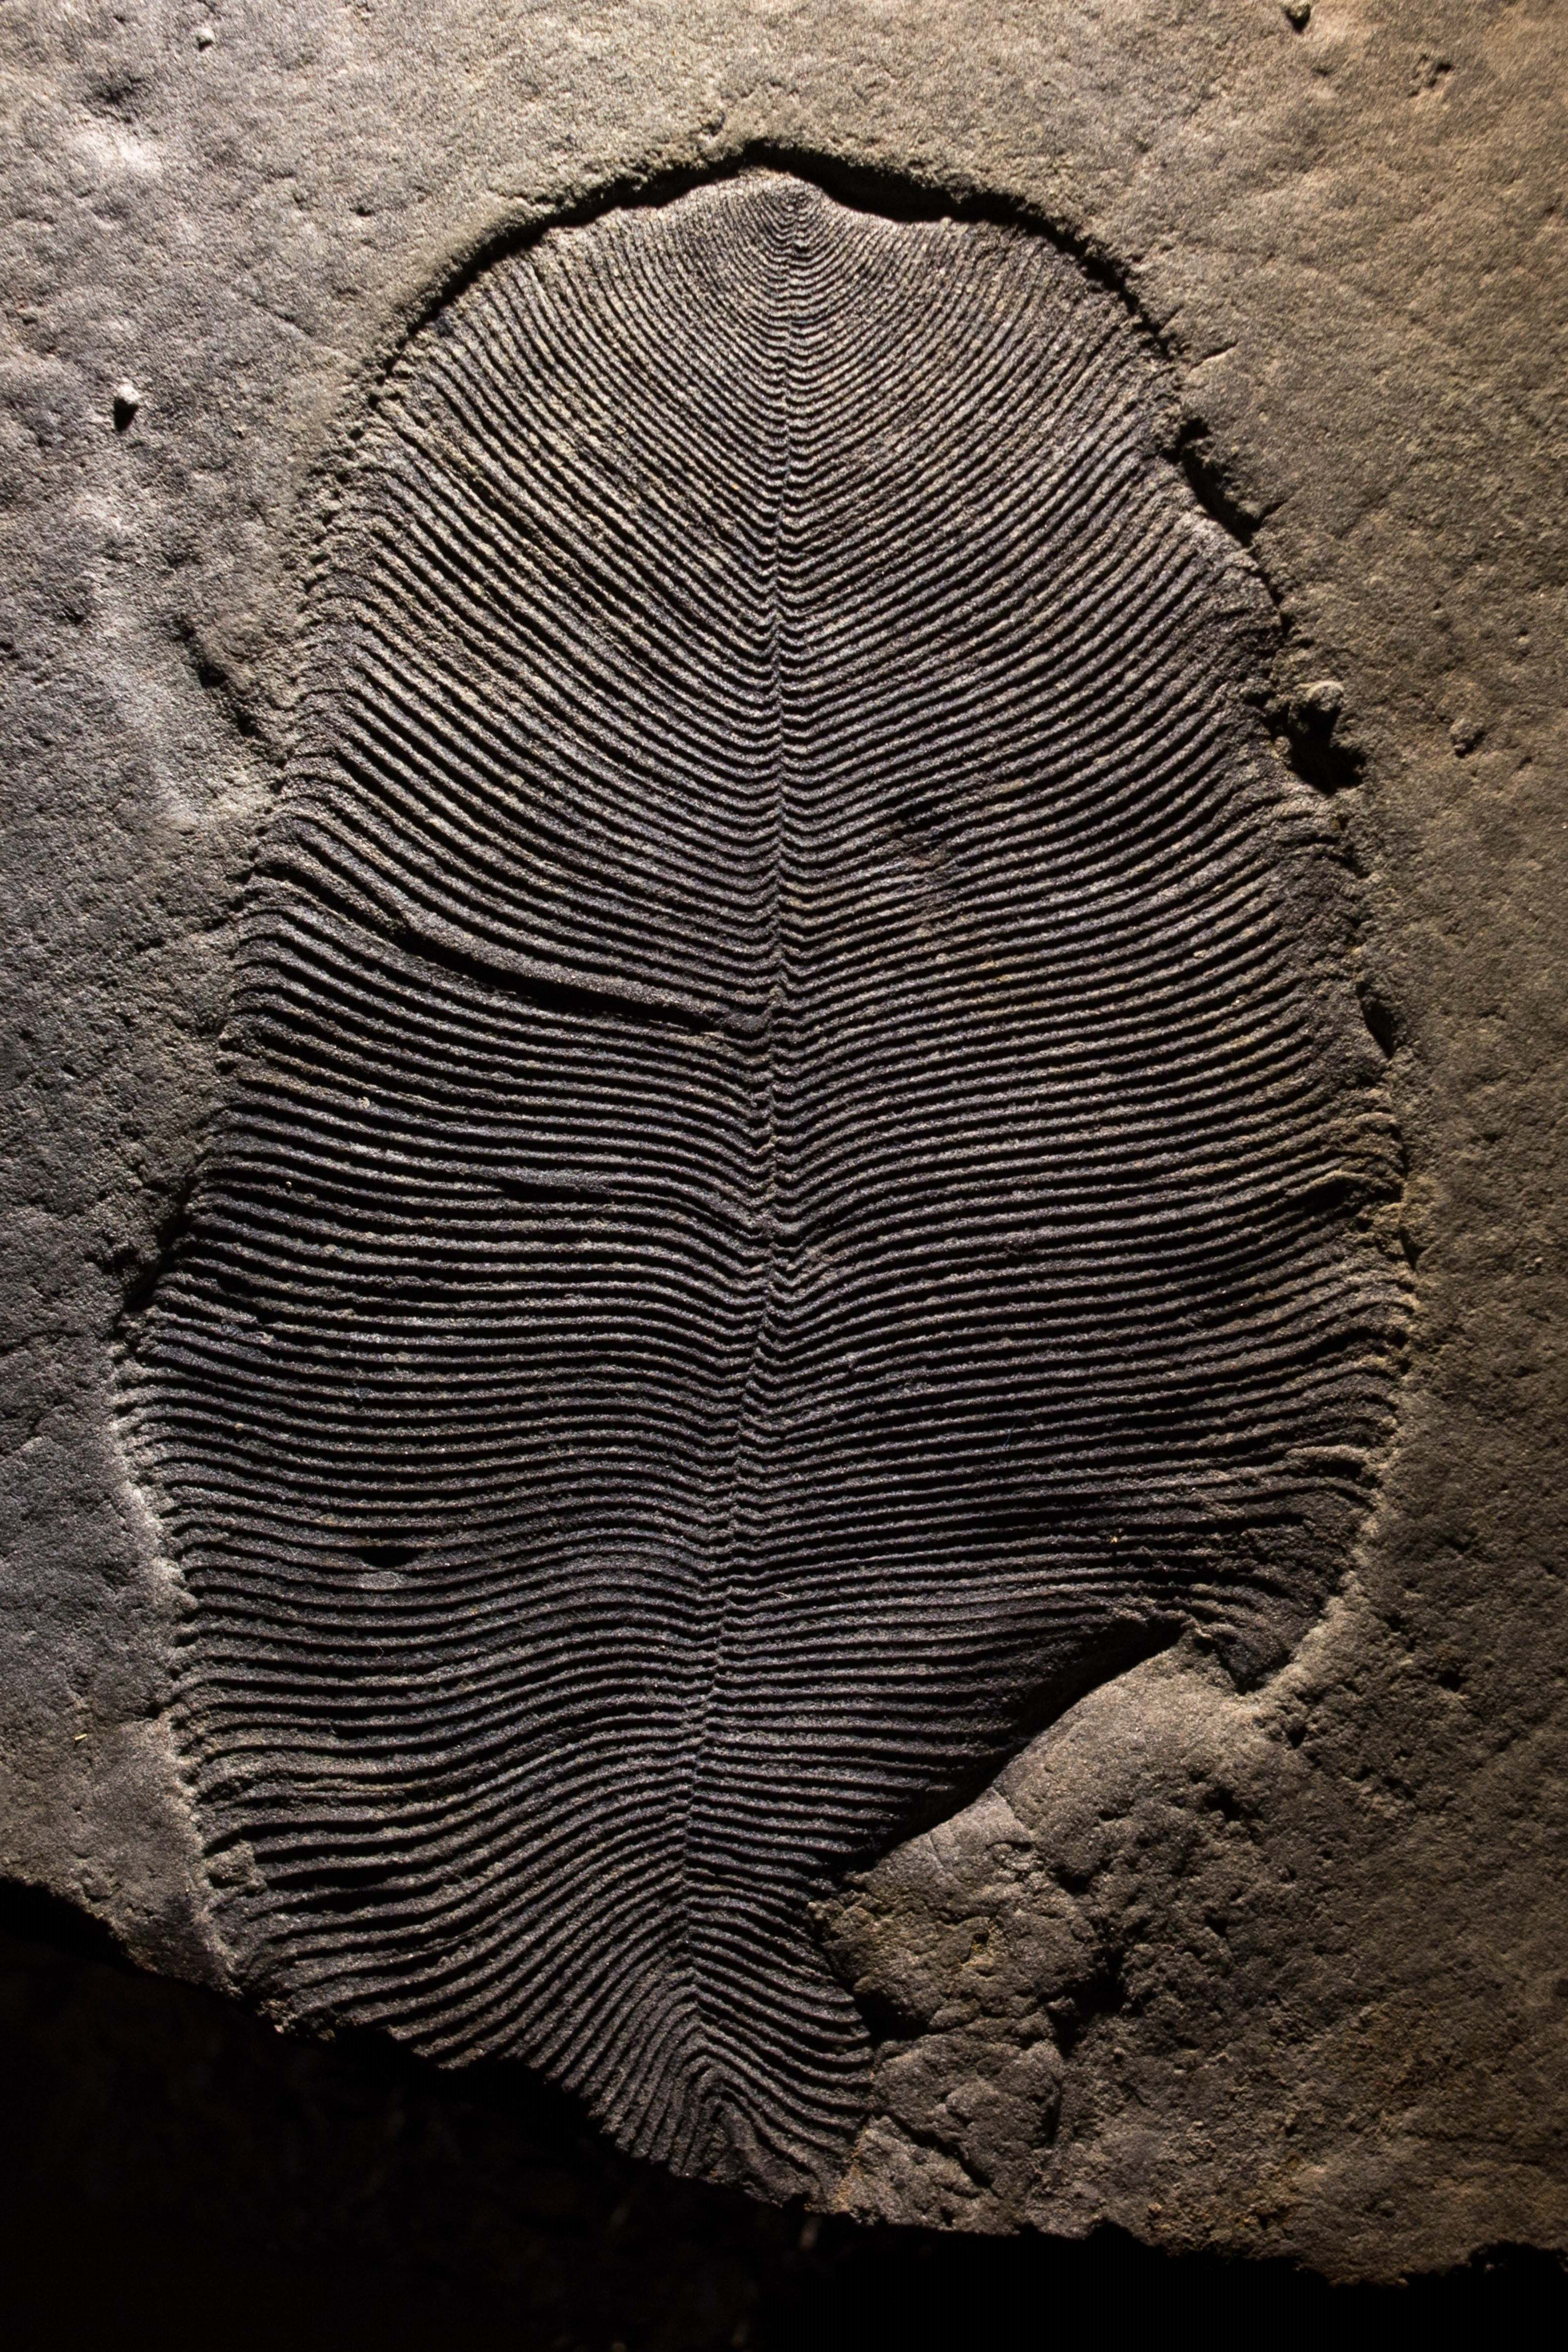 A well-preserved Dickinsonia fossil from the White Sea area of